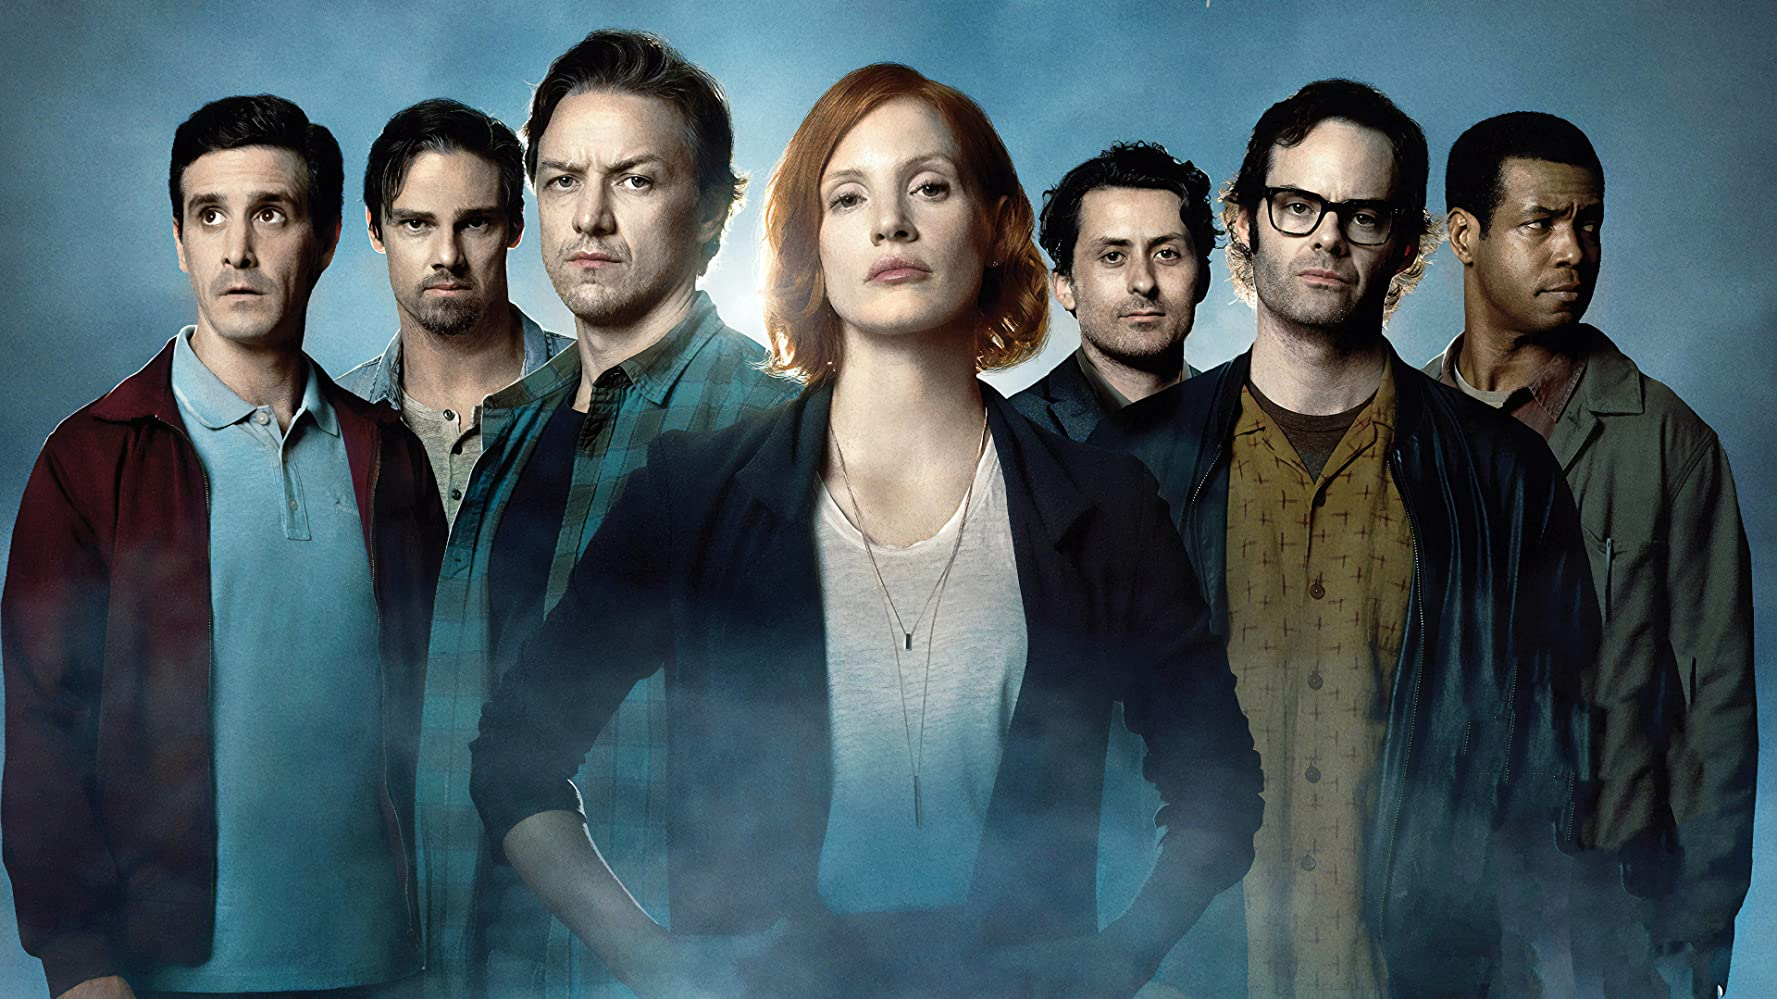 Bill Hader, James McAvoy, James Ransone, Jay Ryan, Jessica Chastain, Isaiah Mustafa, and Andy Bean in It Chapter Two (2019)